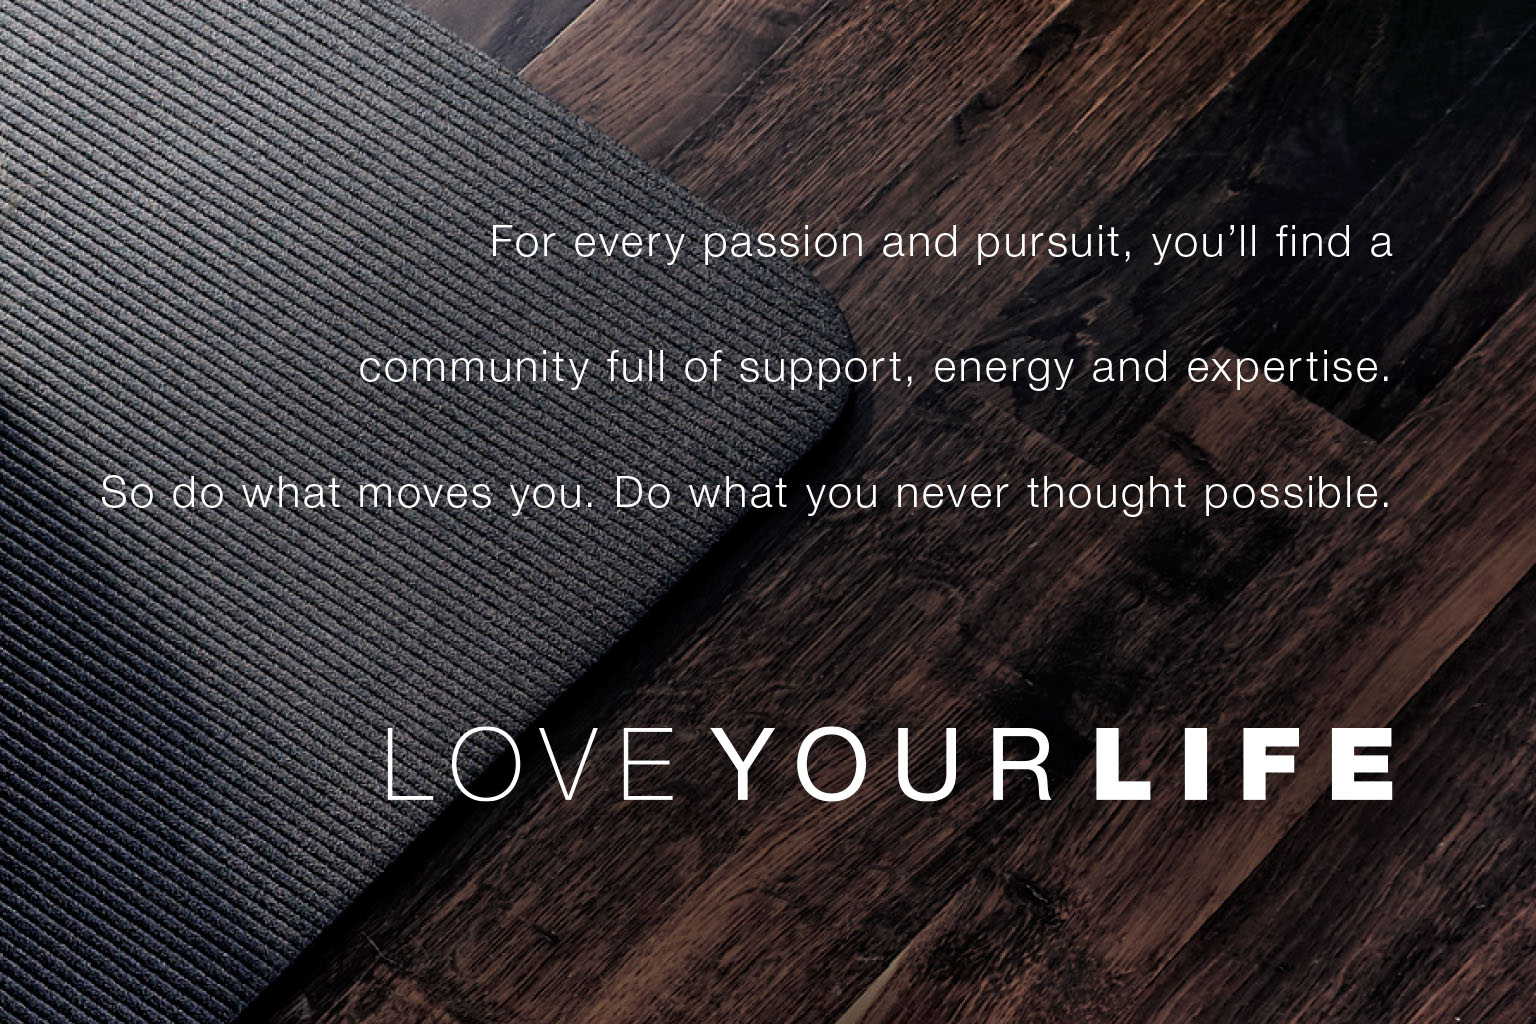 For every passion and pursuit, you'll find a community full of support, energy and expertise